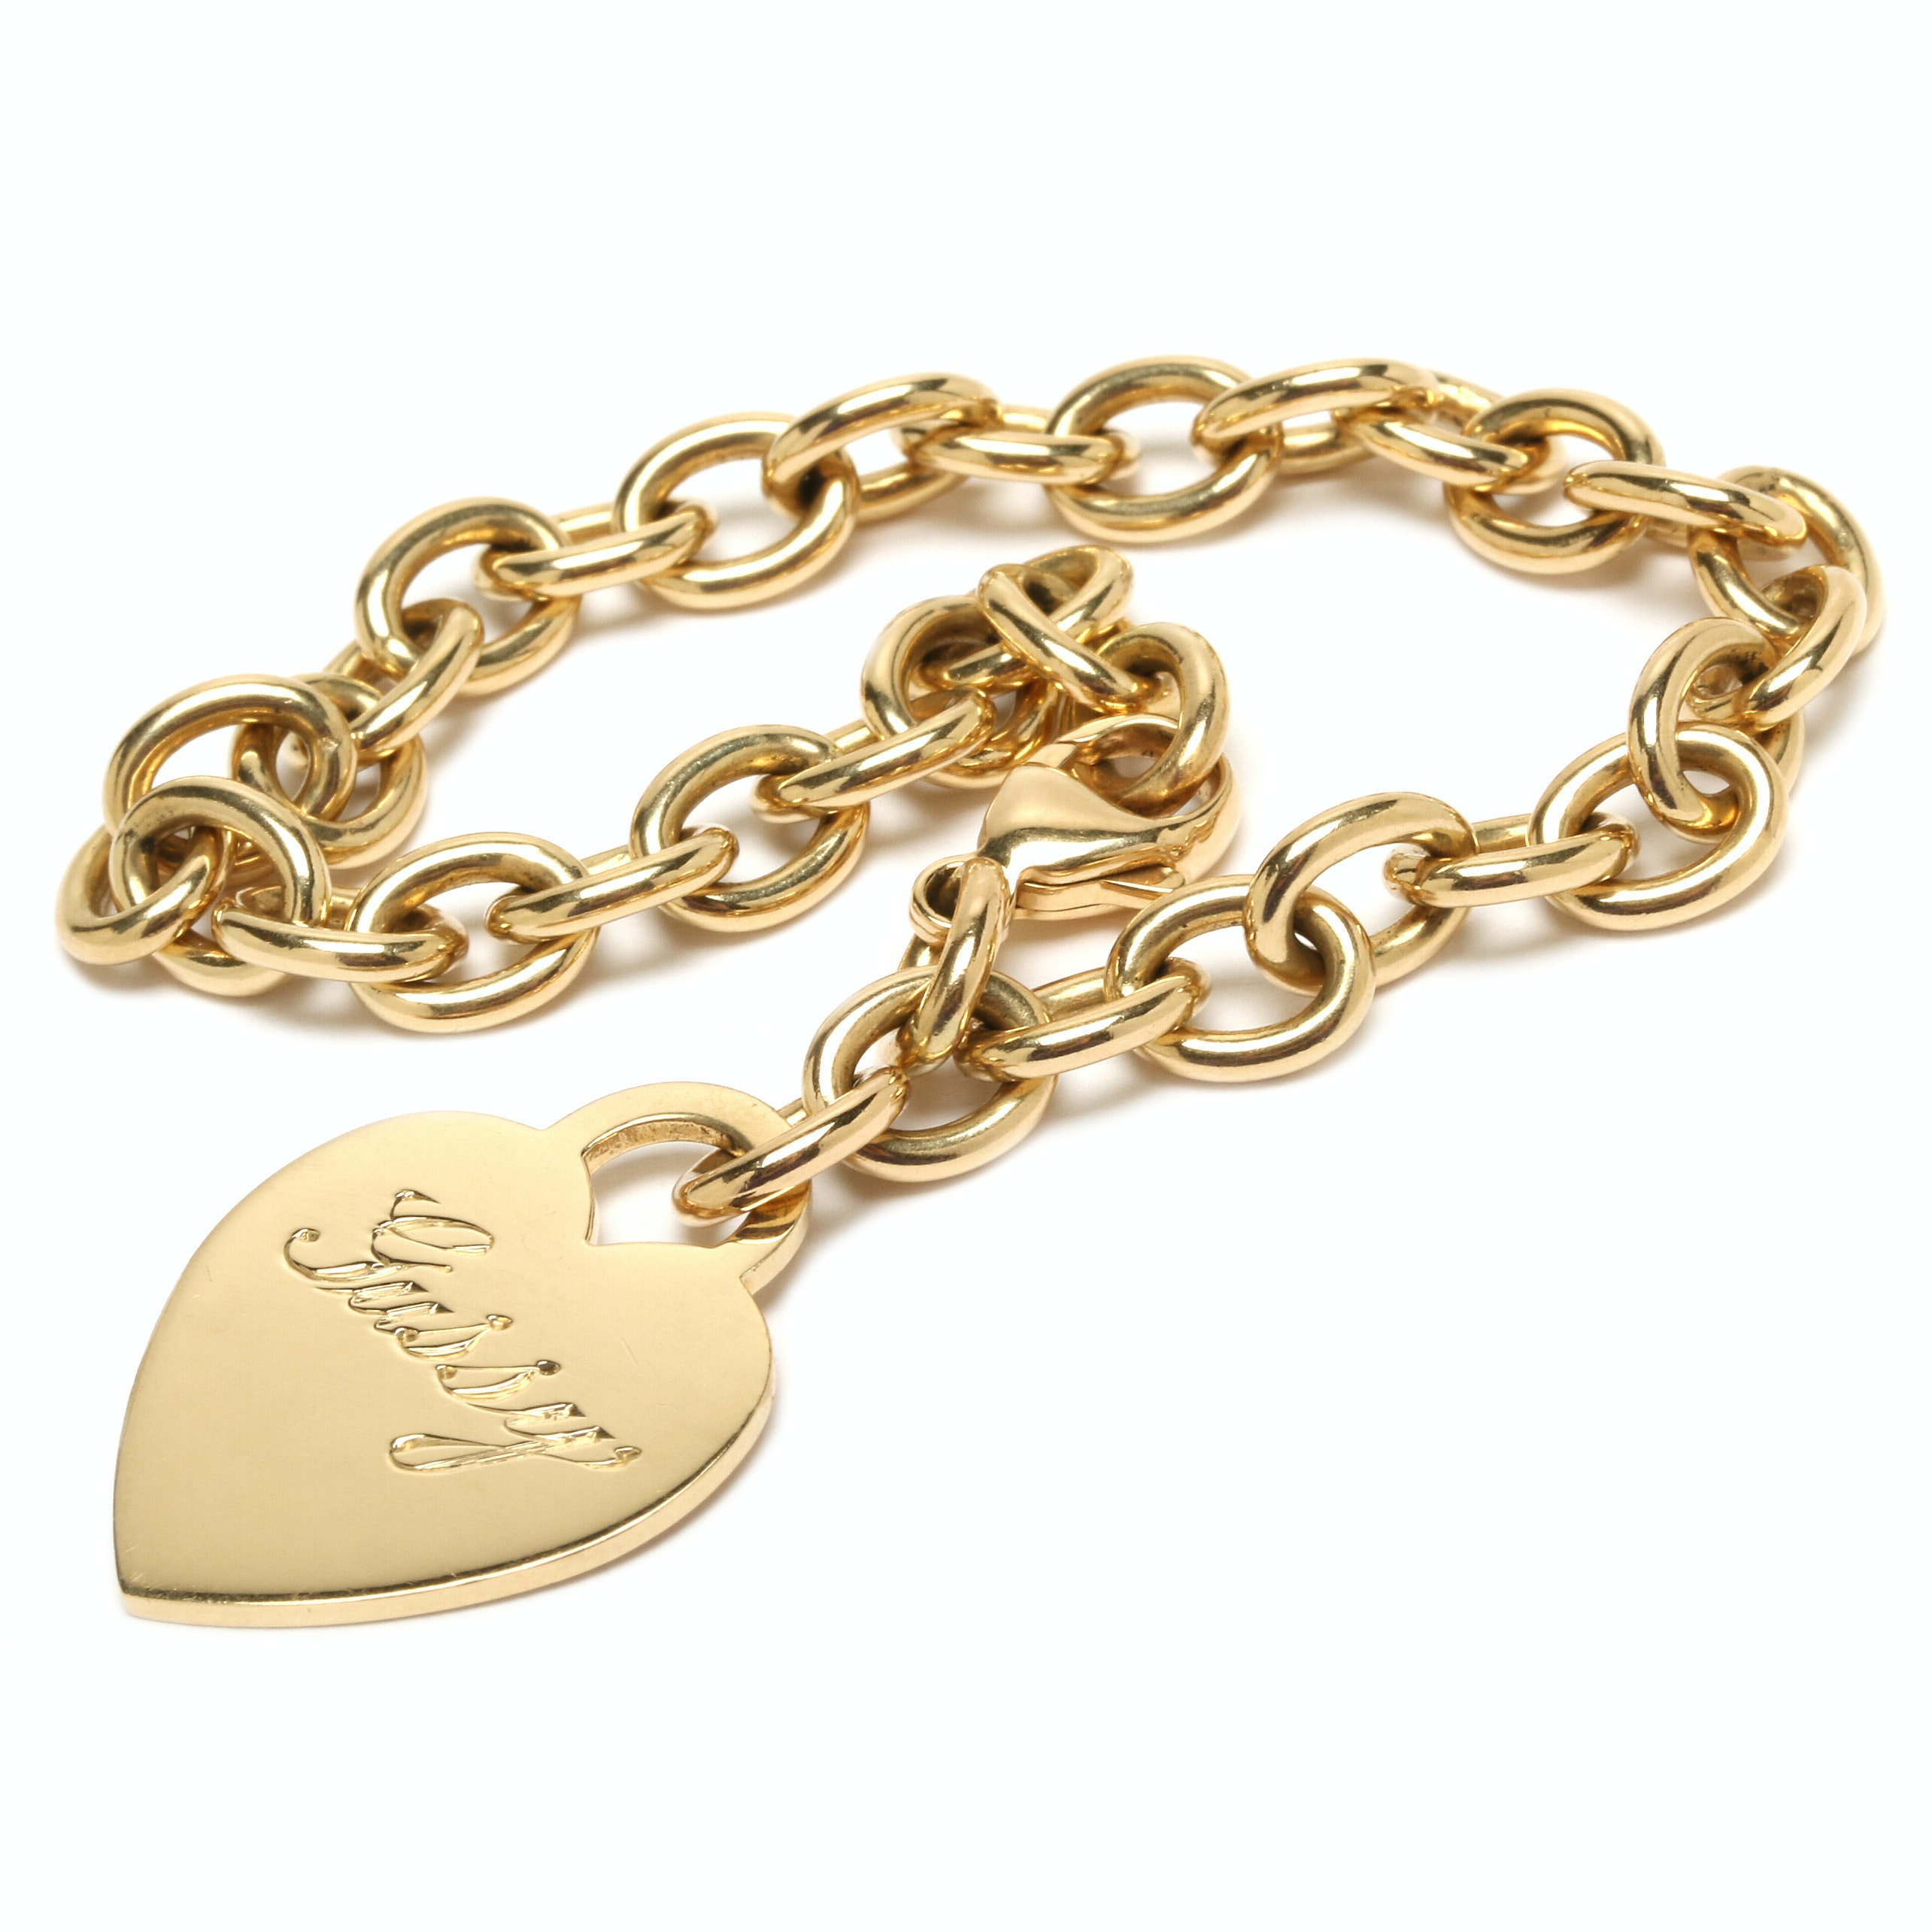 Tiffany and Co 18K Yellow Gold Heart Charm Bracelet